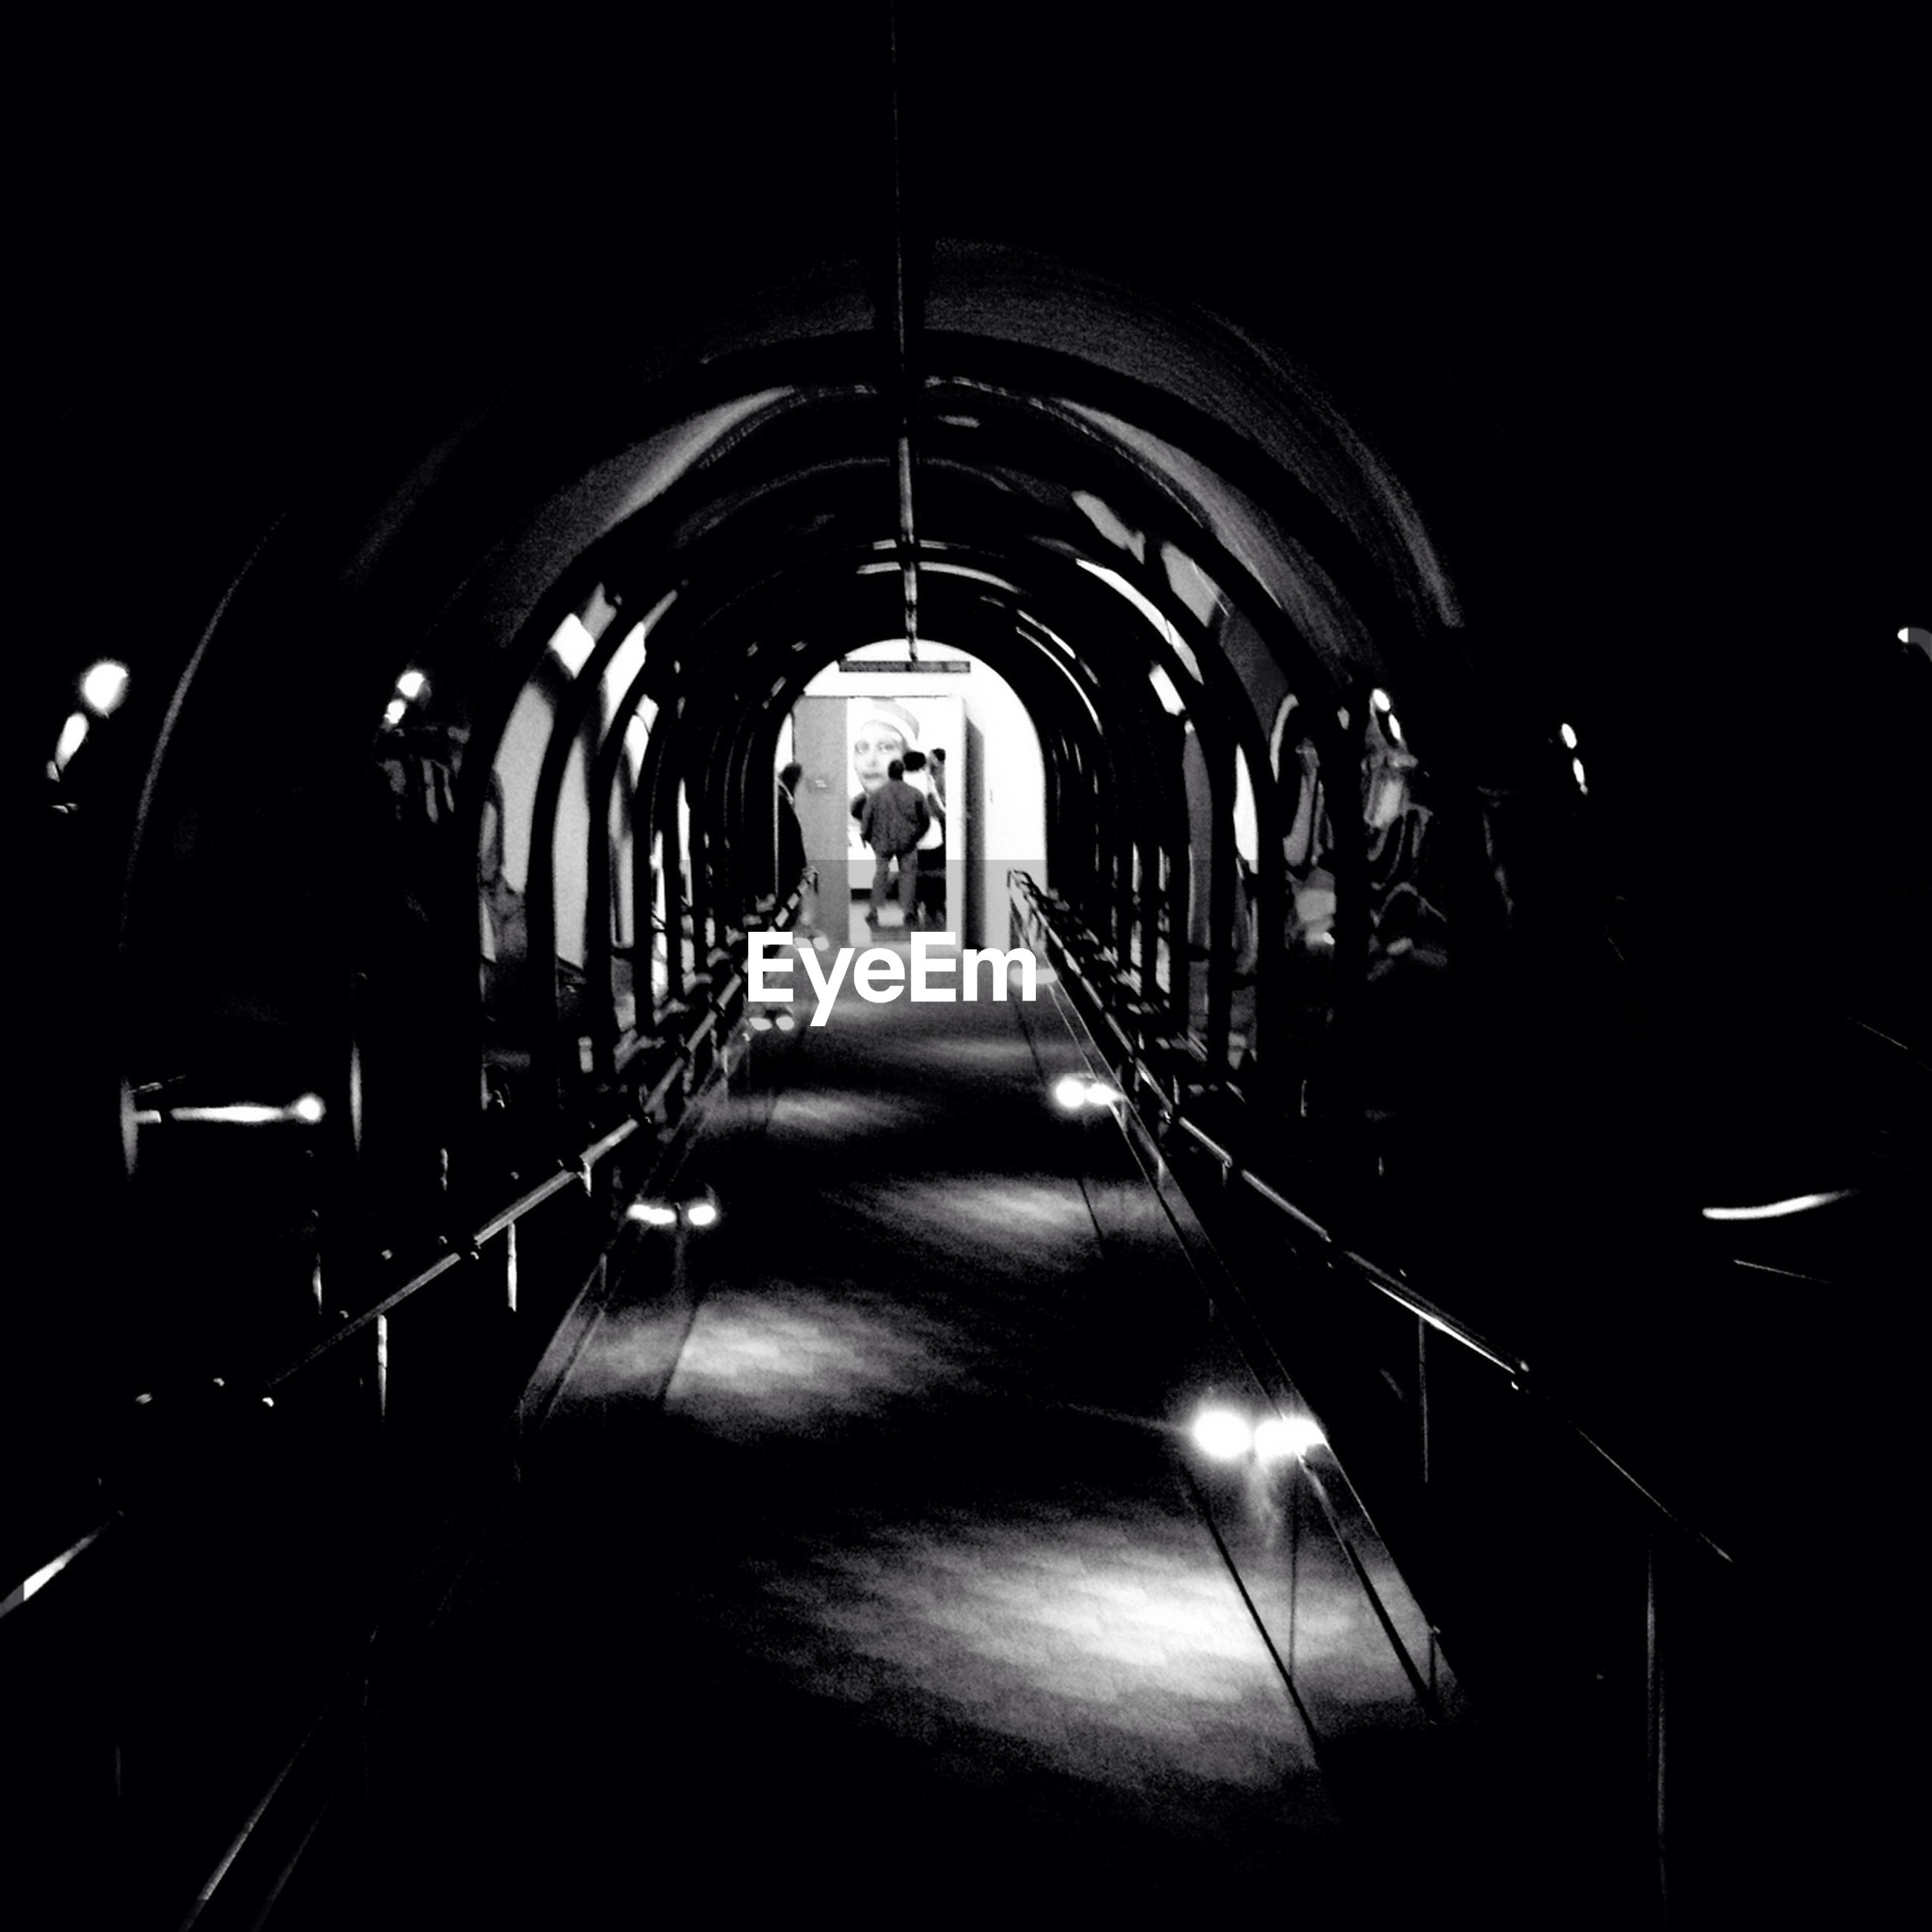 the way forward, indoors, illuminated, tunnel, diminishing perspective, arch, vanishing point, transportation, night, lighting equipment, dark, empty, architecture, built structure, in a row, long, narrow, absence, light at the end of the tunnel, corridor